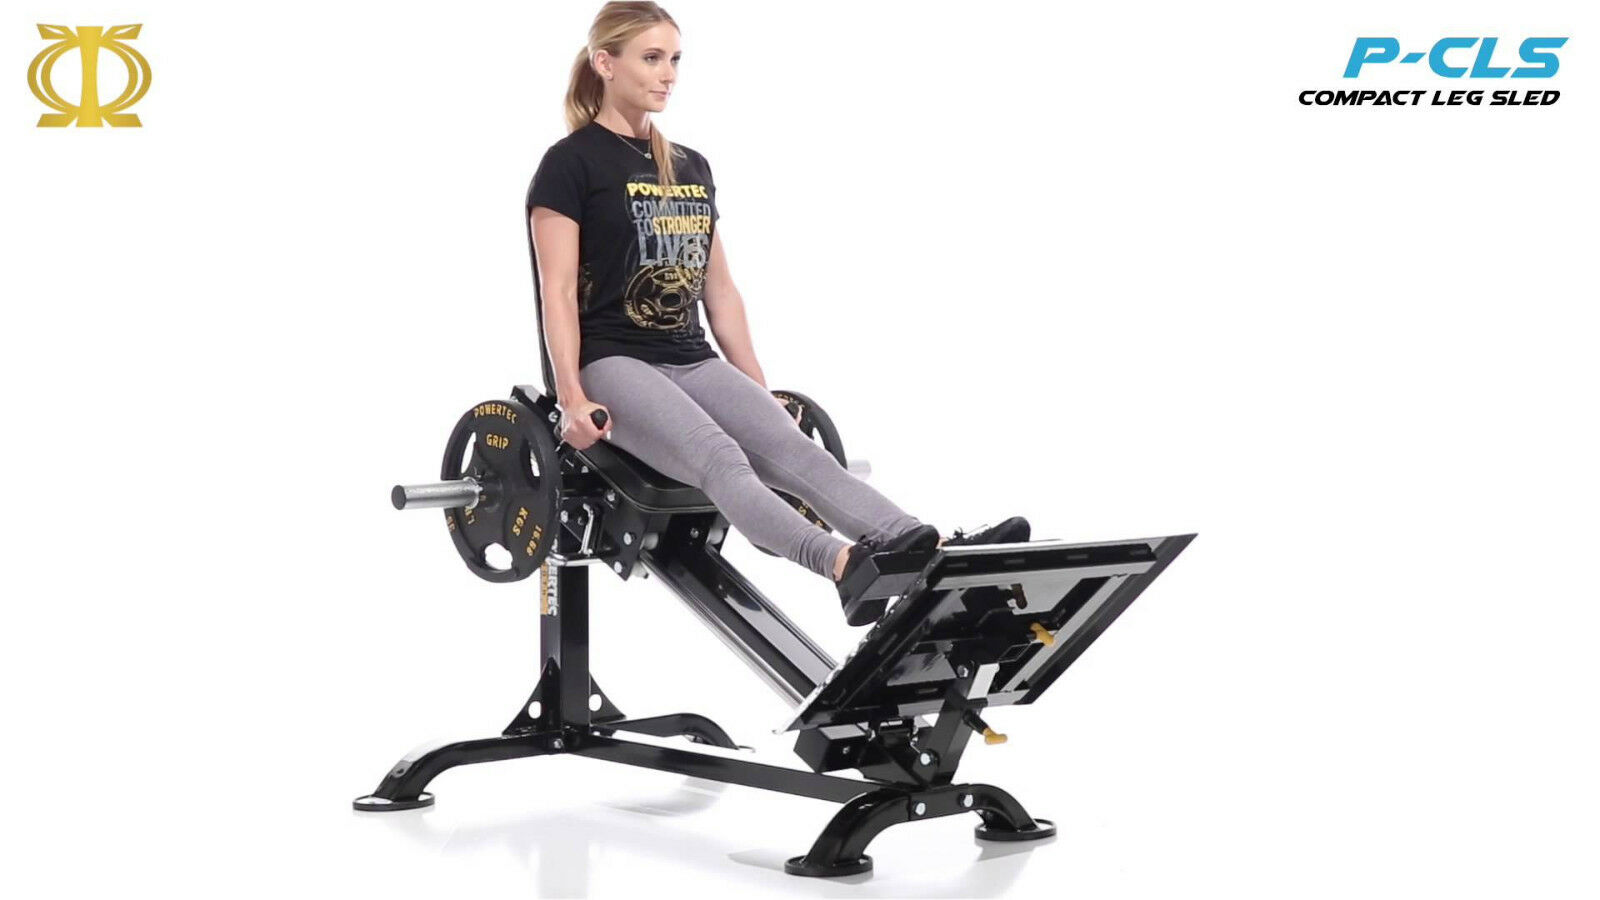 Powertec CLS-16 Compact Leg Sled (weights sold separately)